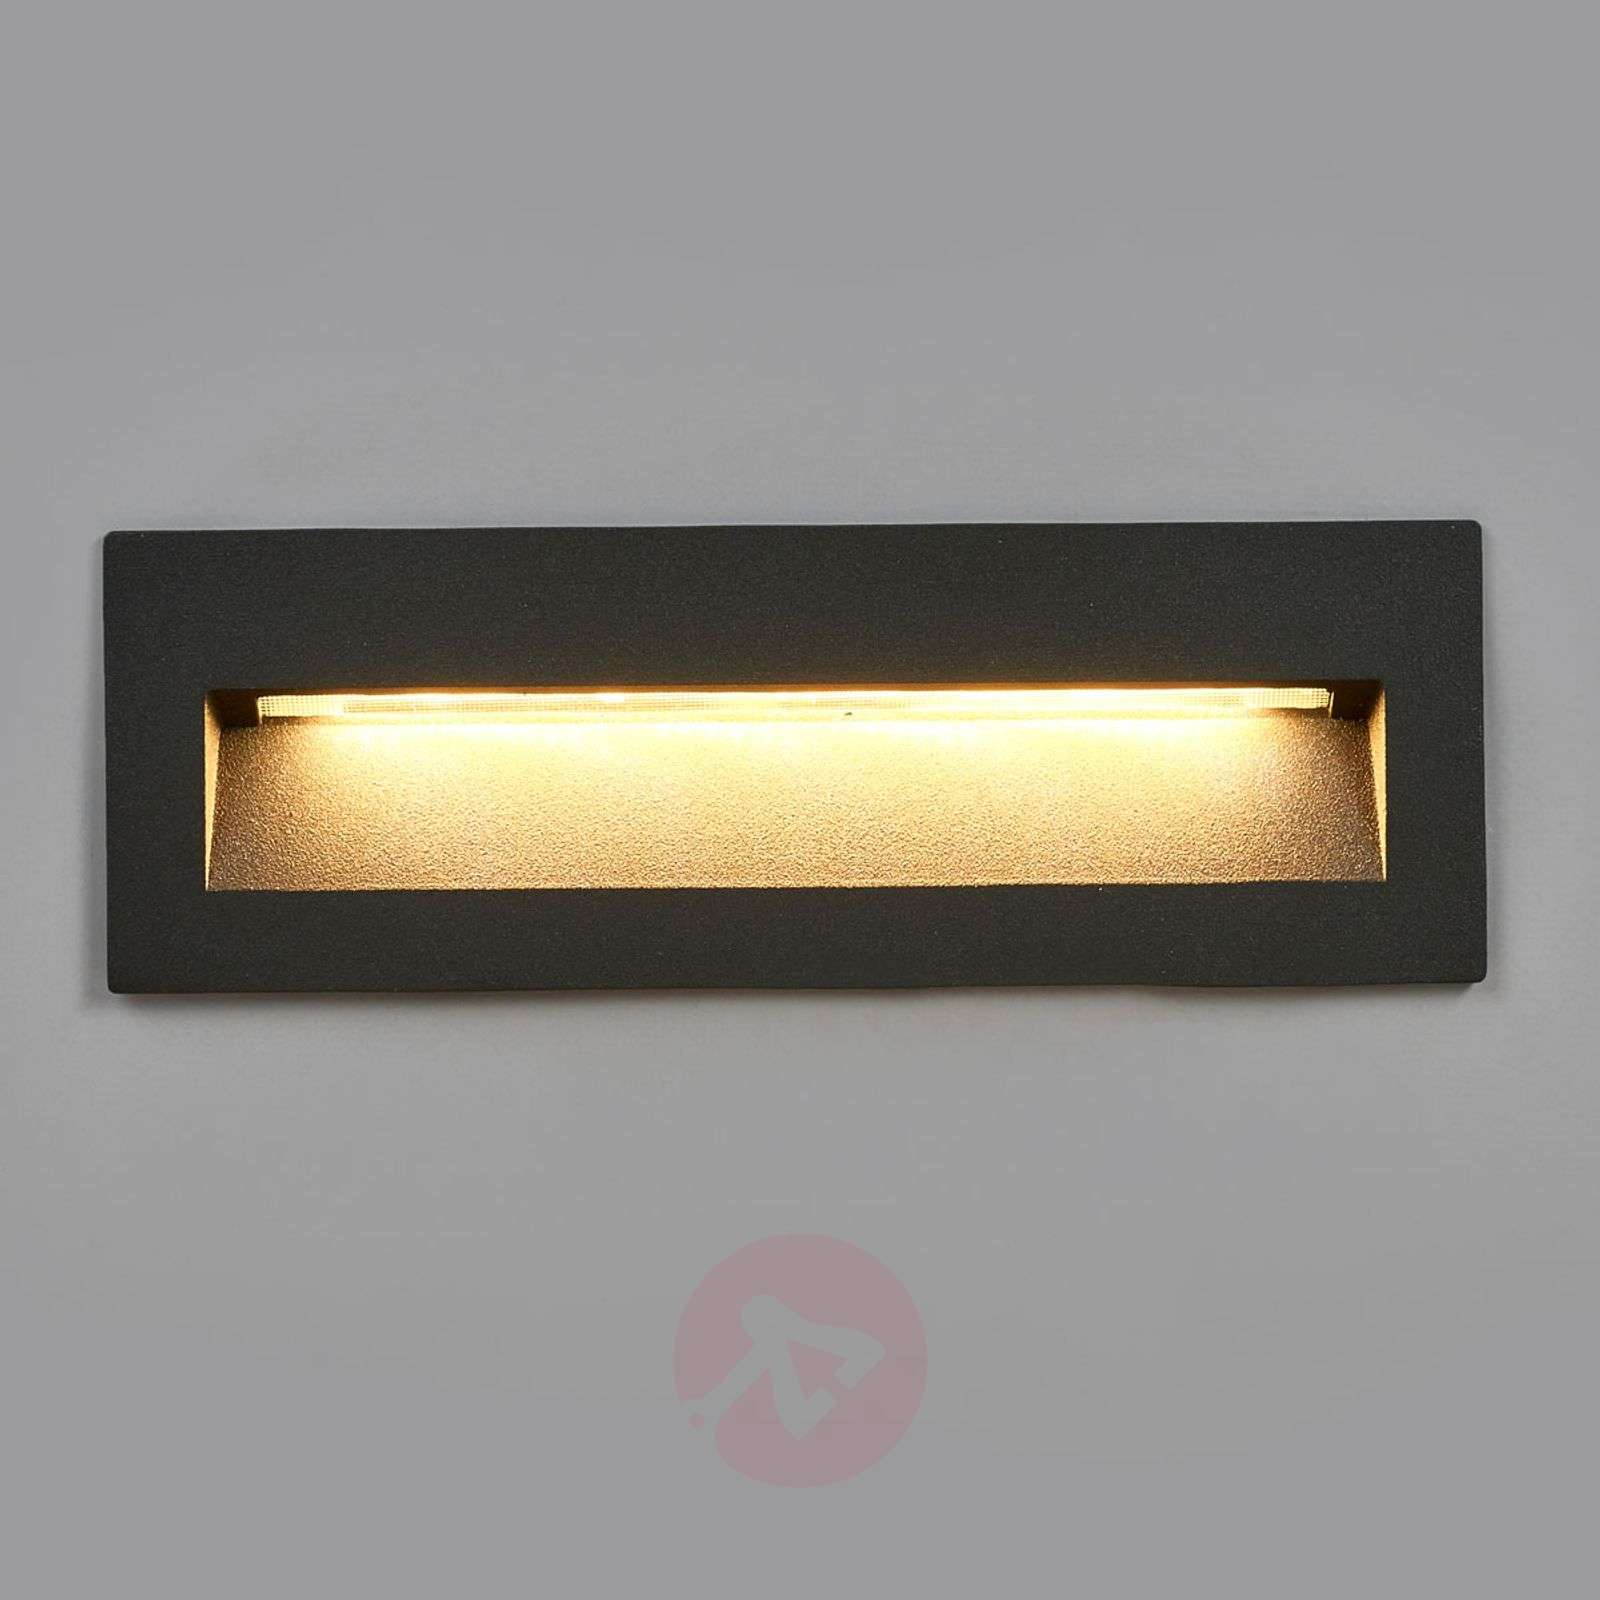 Dark LED Recessed Light Loya For Outdoor Walls